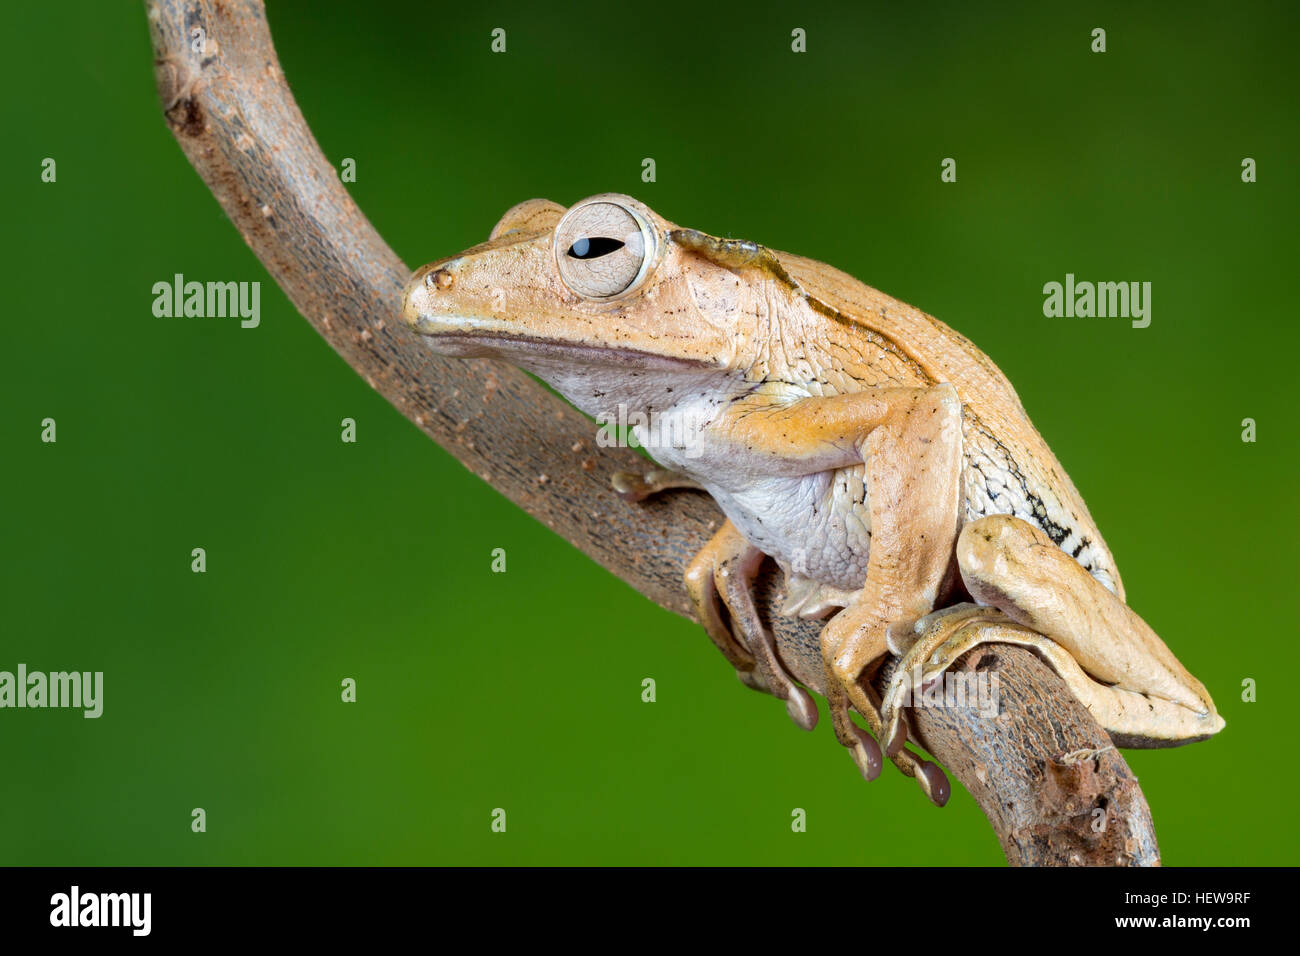 Portrait of a Borneo eared frog - Stock Image